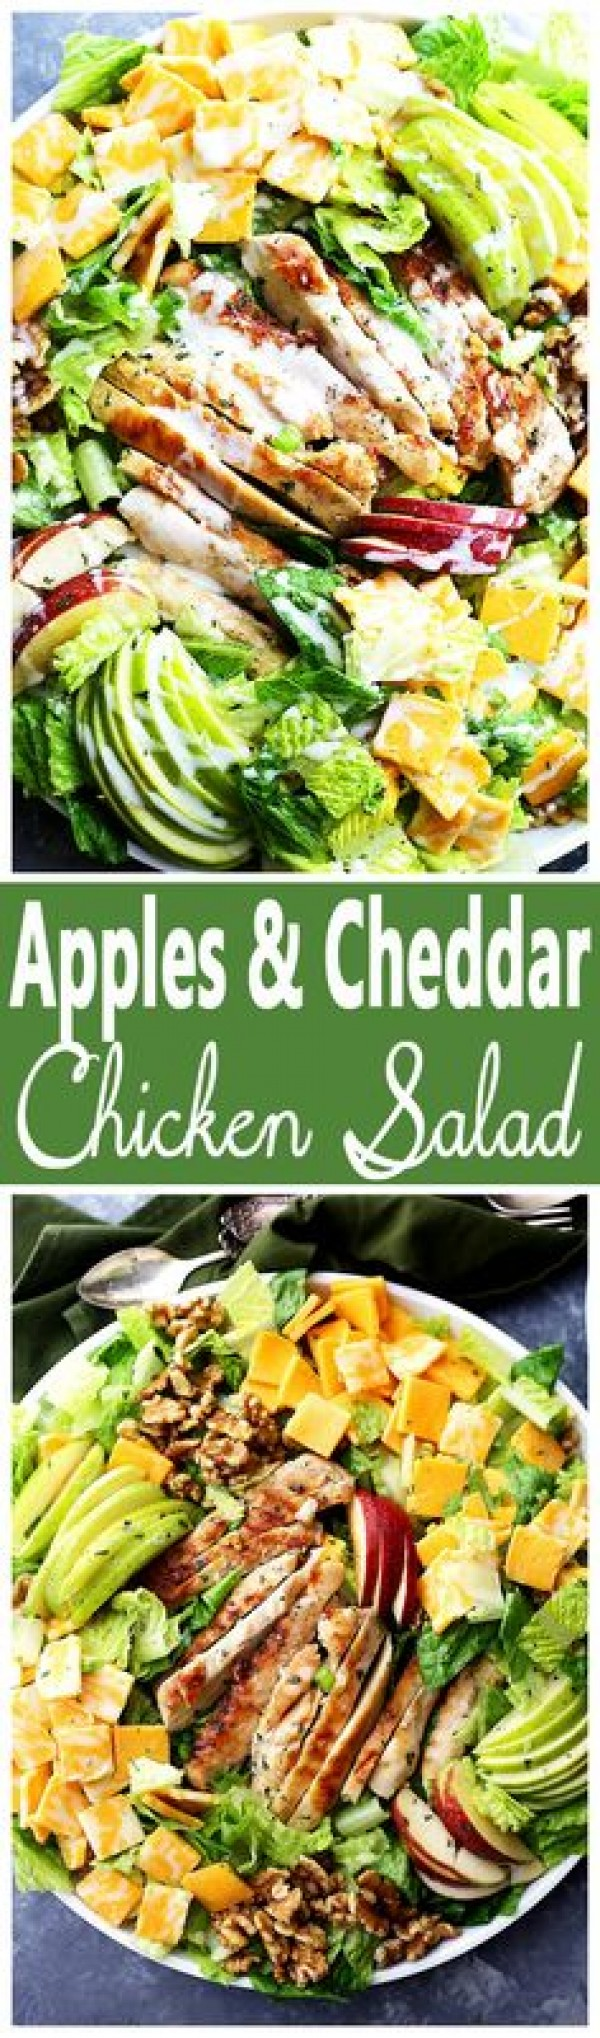 Get the recipe Apples and Cheddar Chicken Salad @recipes_to_go